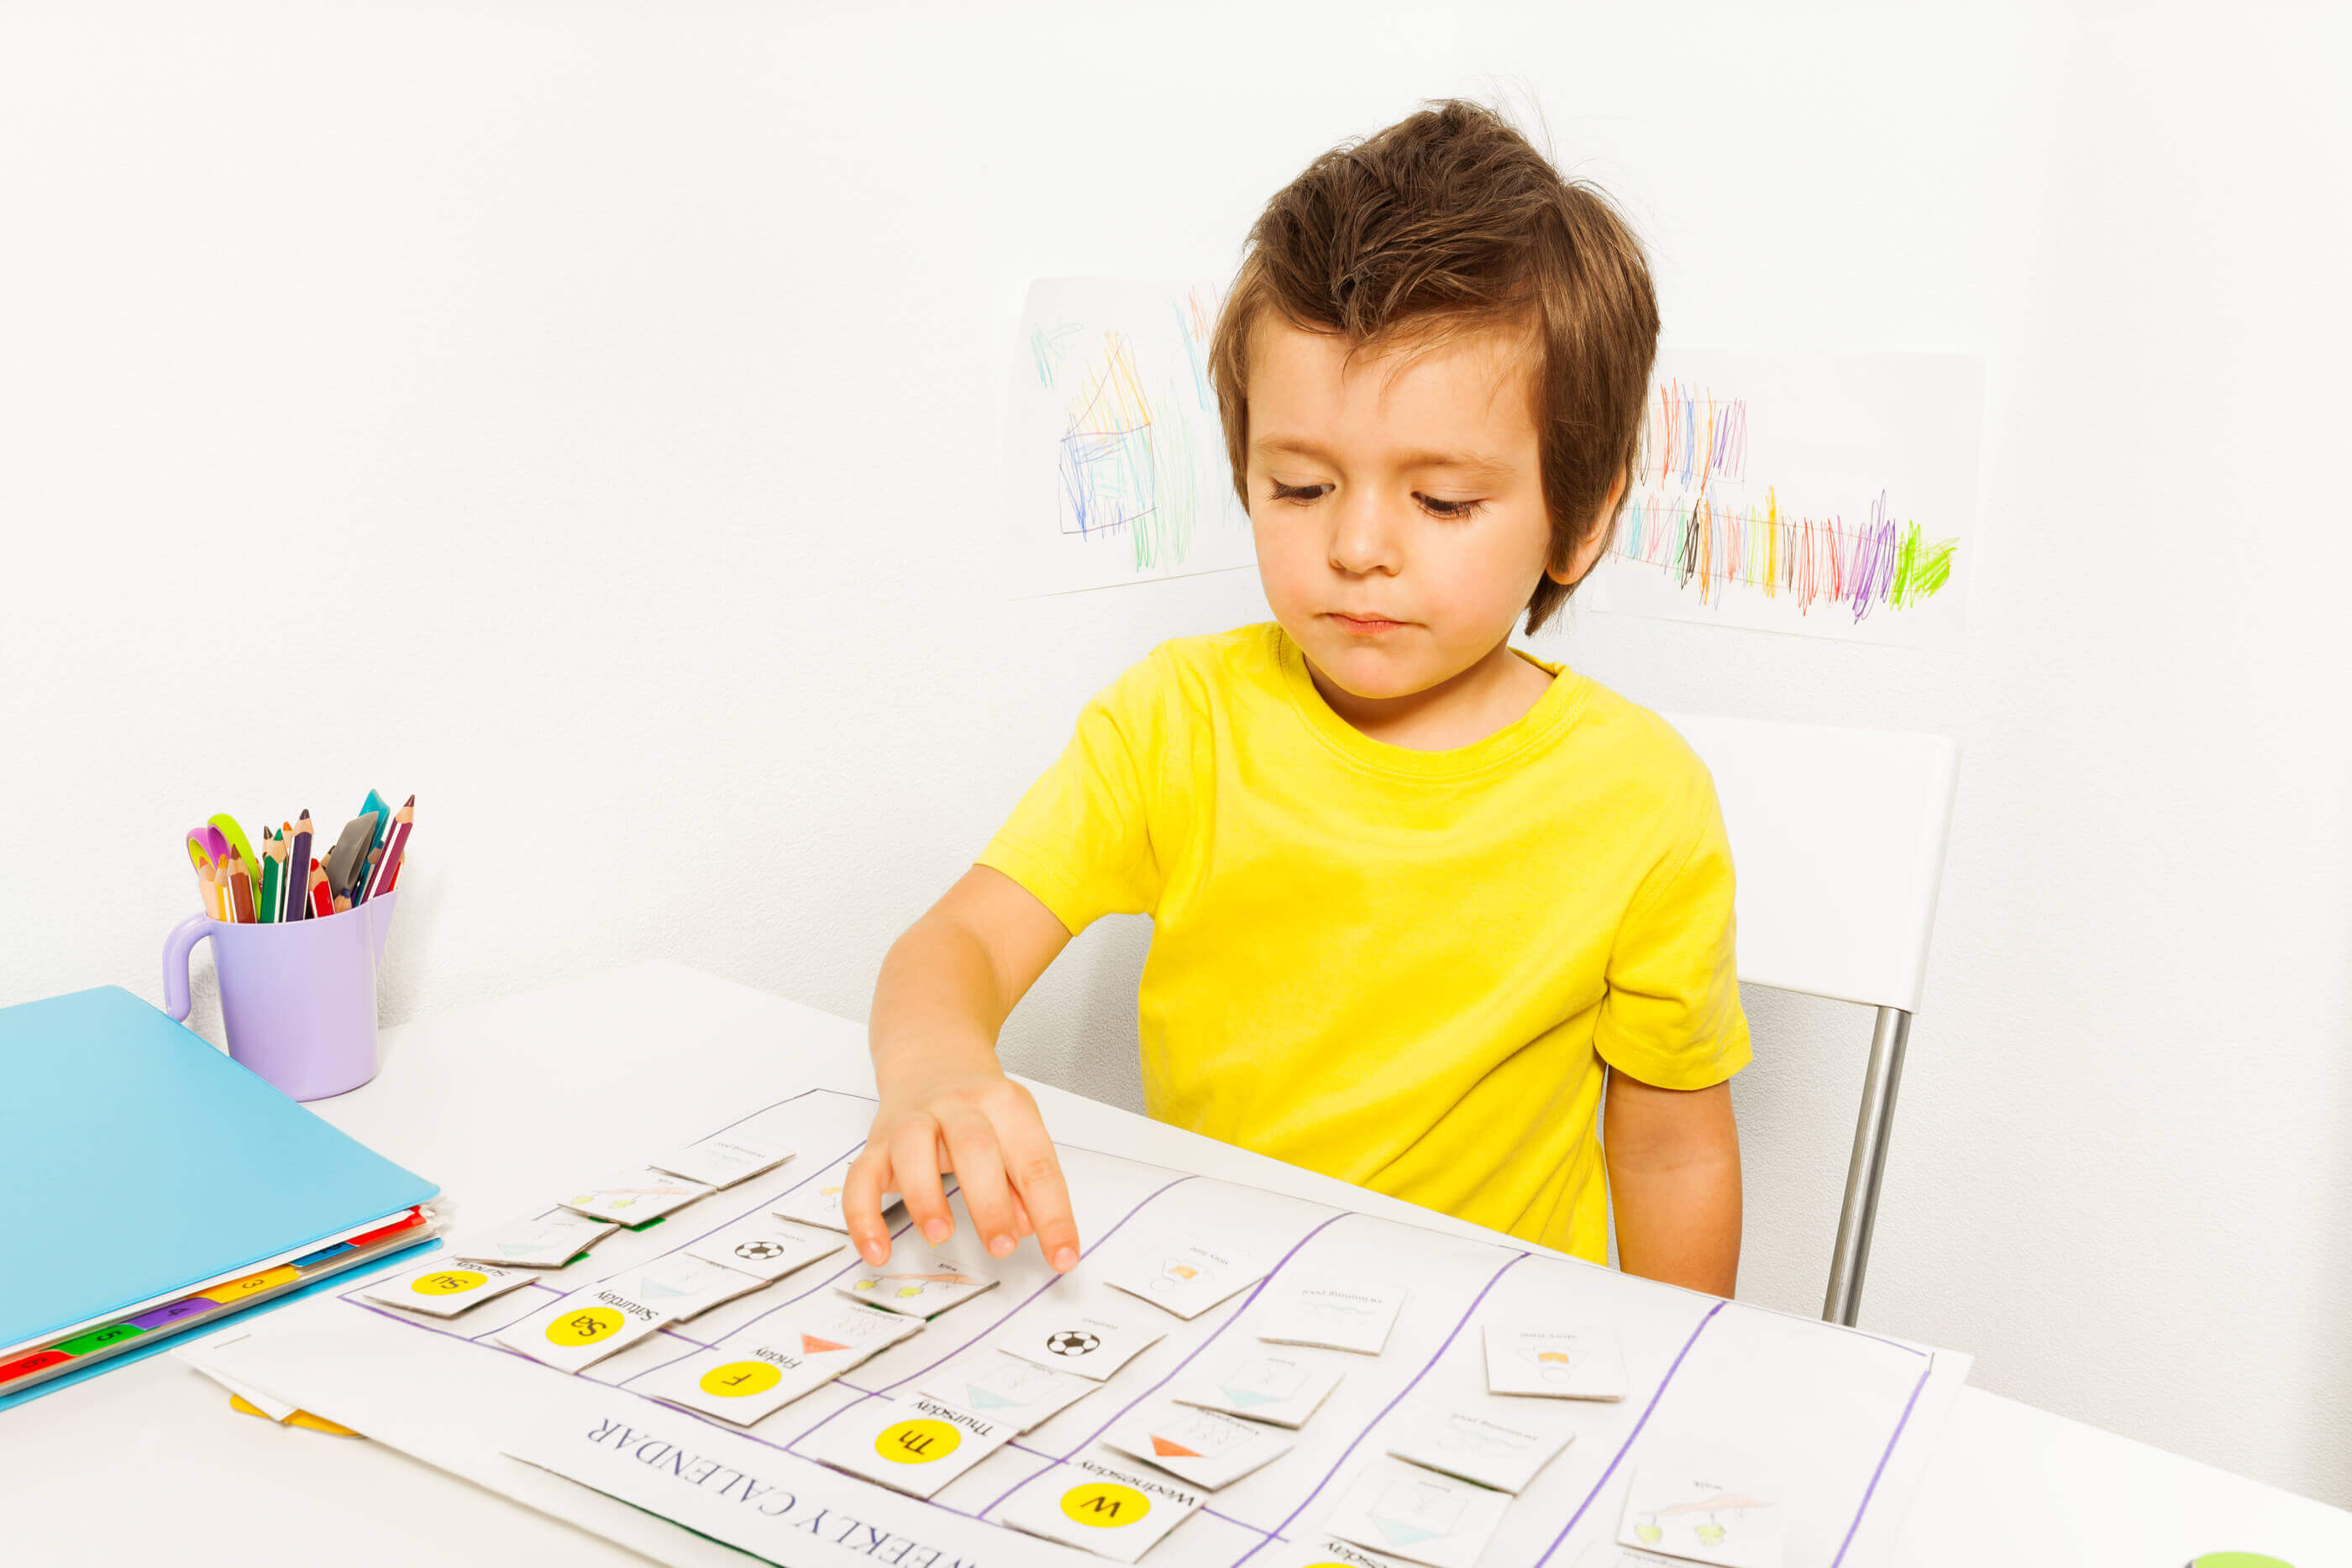 Boy-plays-in-developing-game-pointing-at-calendar (1)